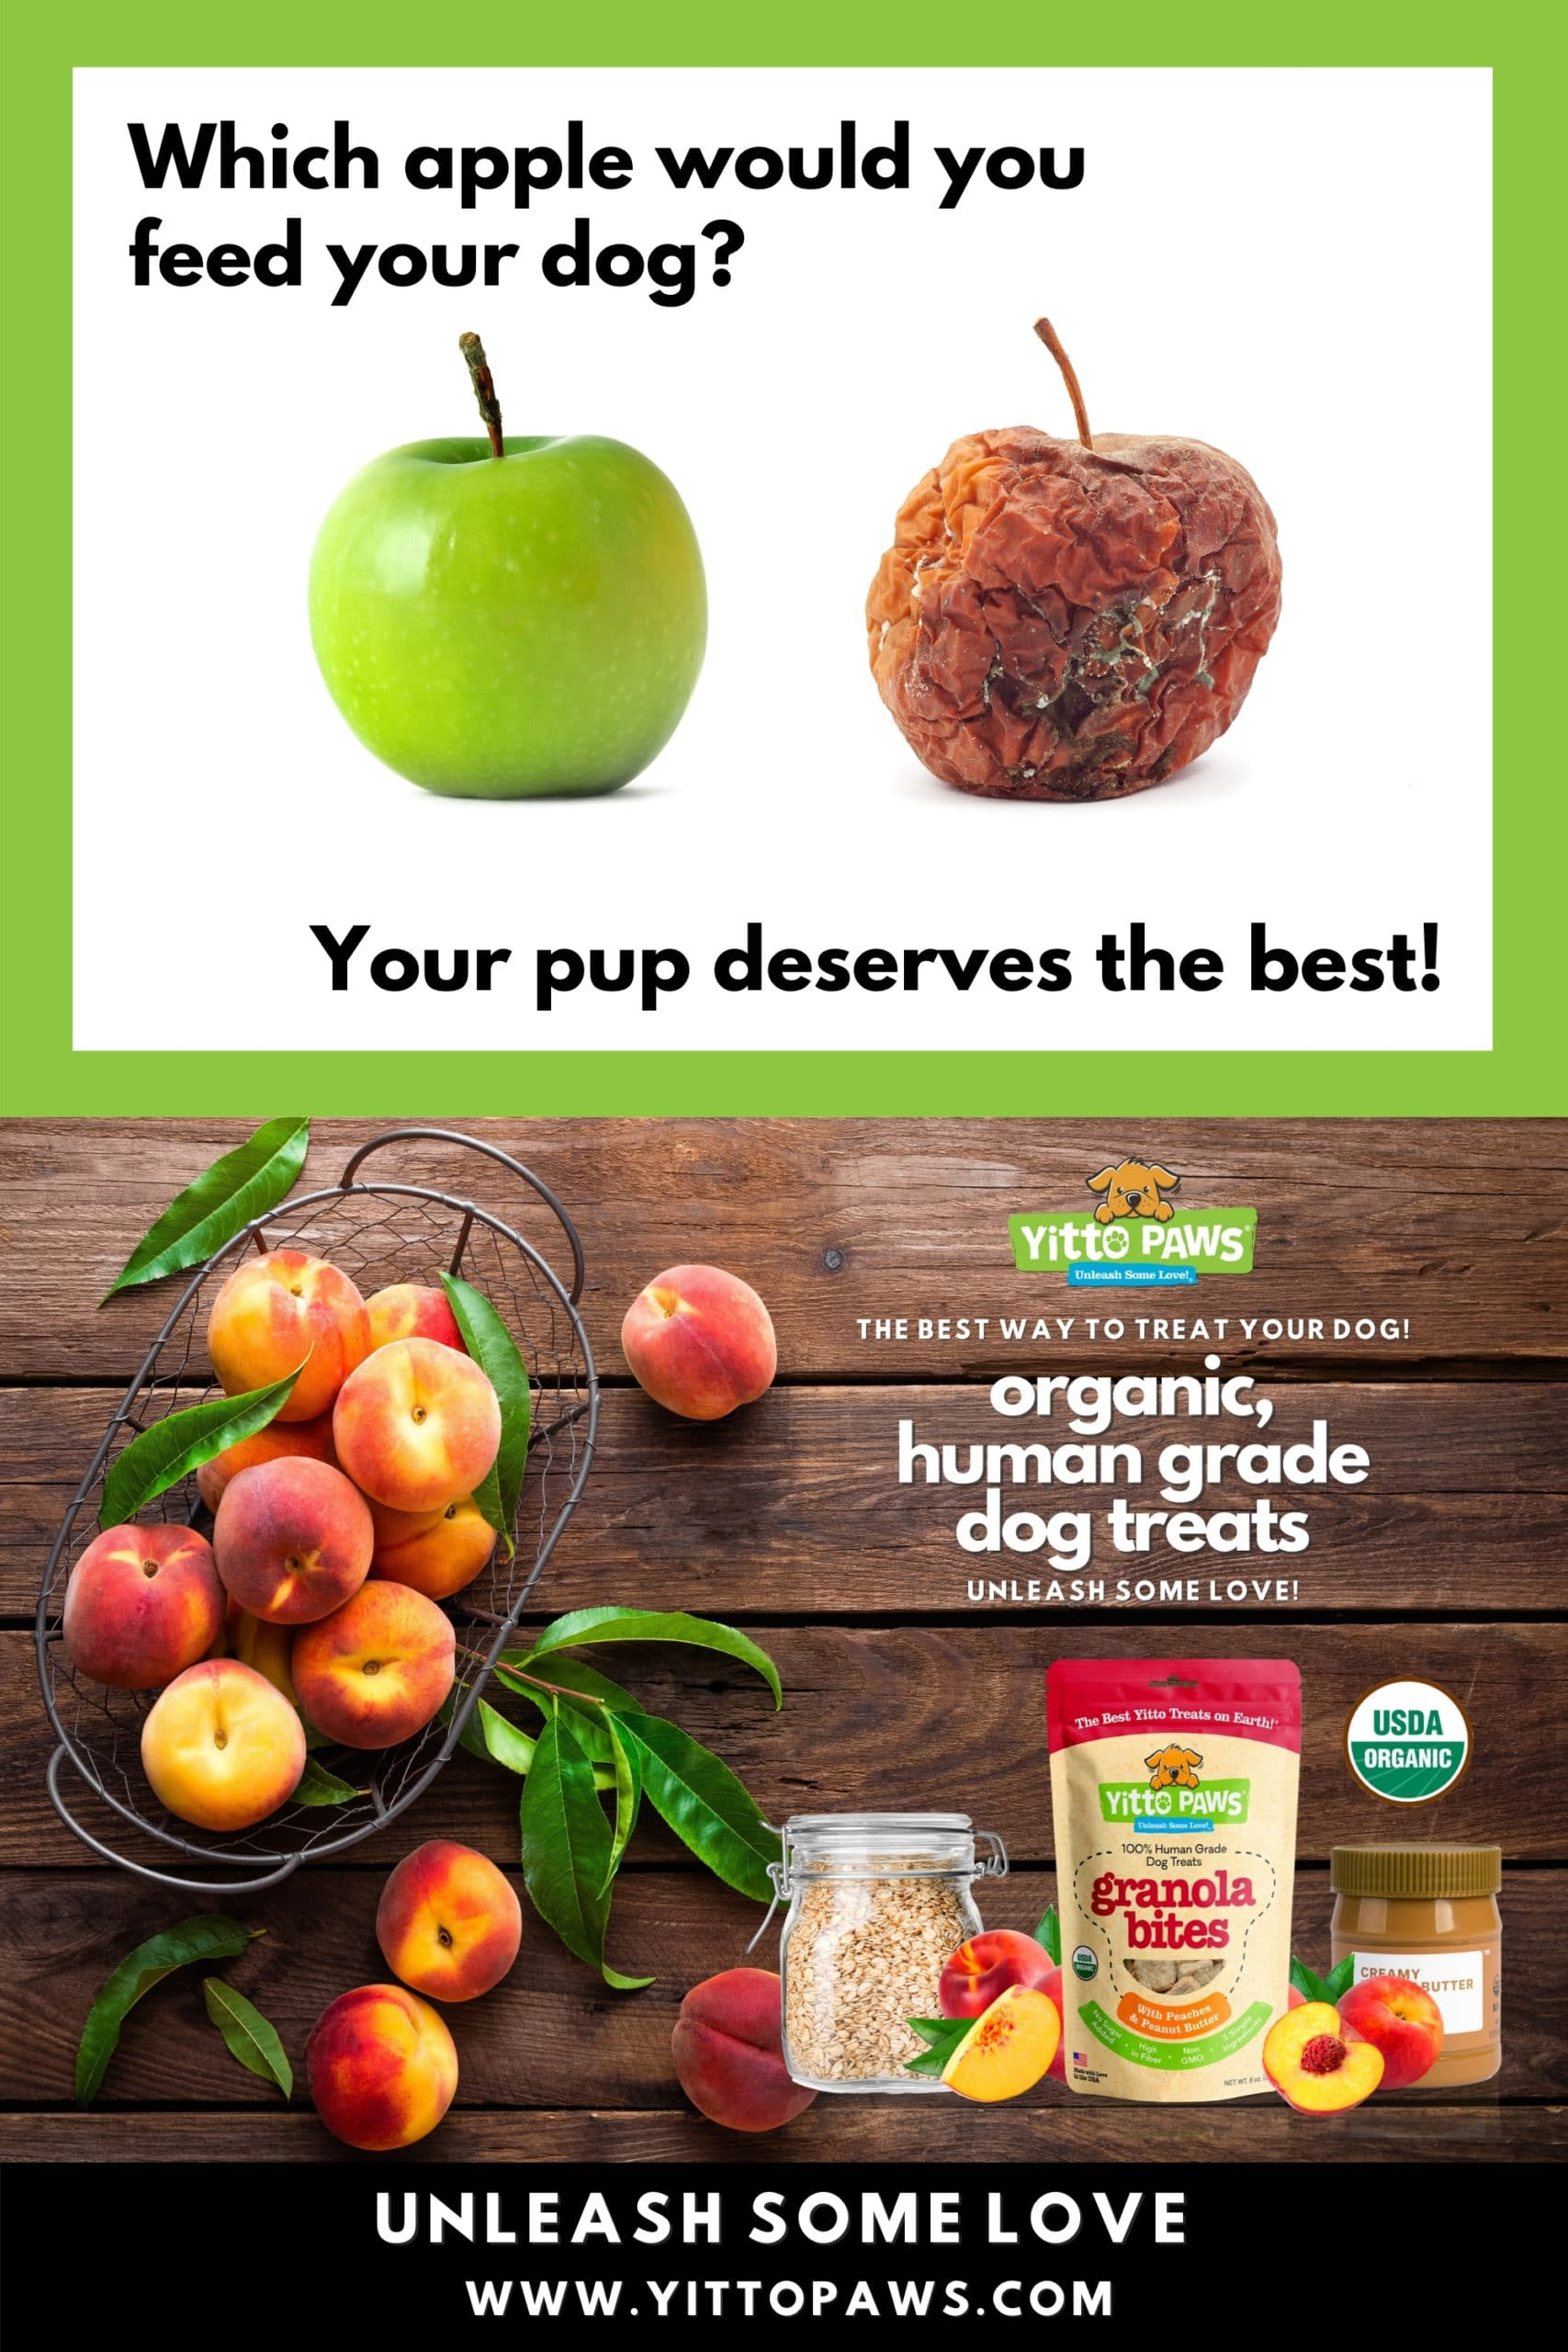 Yitto Paws Puts Dogs First by making 100% Human Grade Dog Treats!